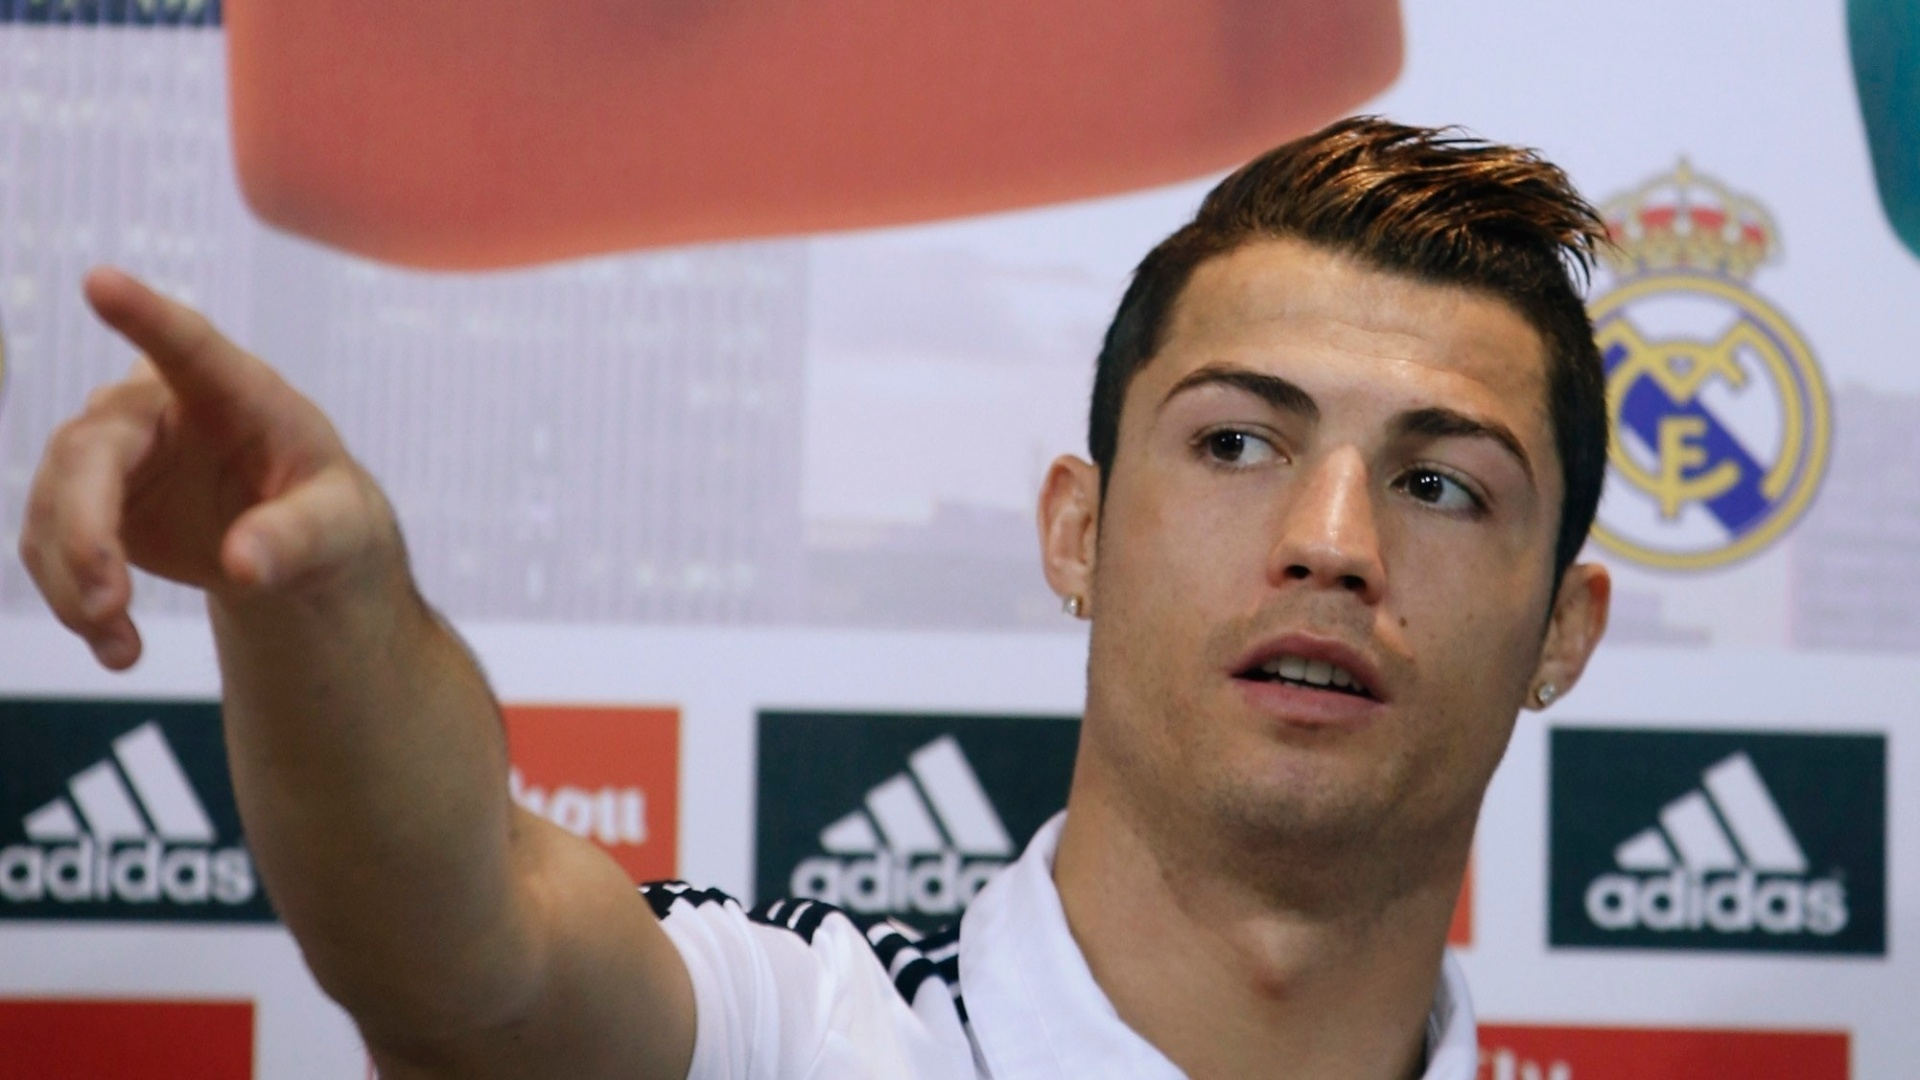 Cristiano Ronaldo New Hairstyles Hd Wallpapers Updated 2020